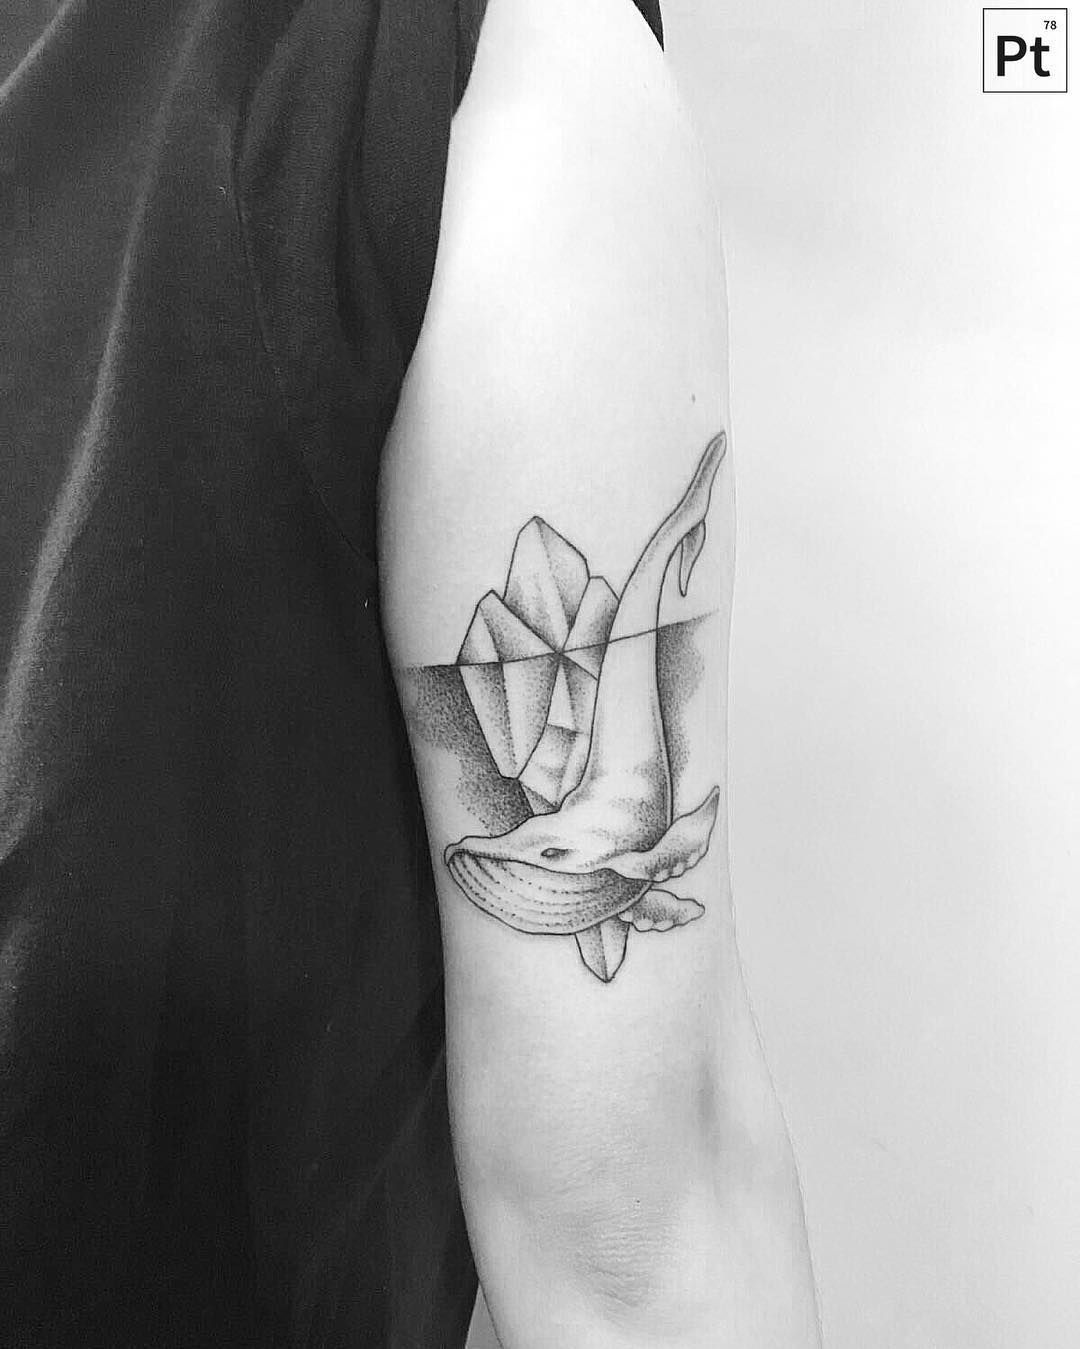 Illustrative And Geometric Black And Gray Tattoos By Pablo Torre Black And Grey Tattoos Grey Tattoo Tattoos